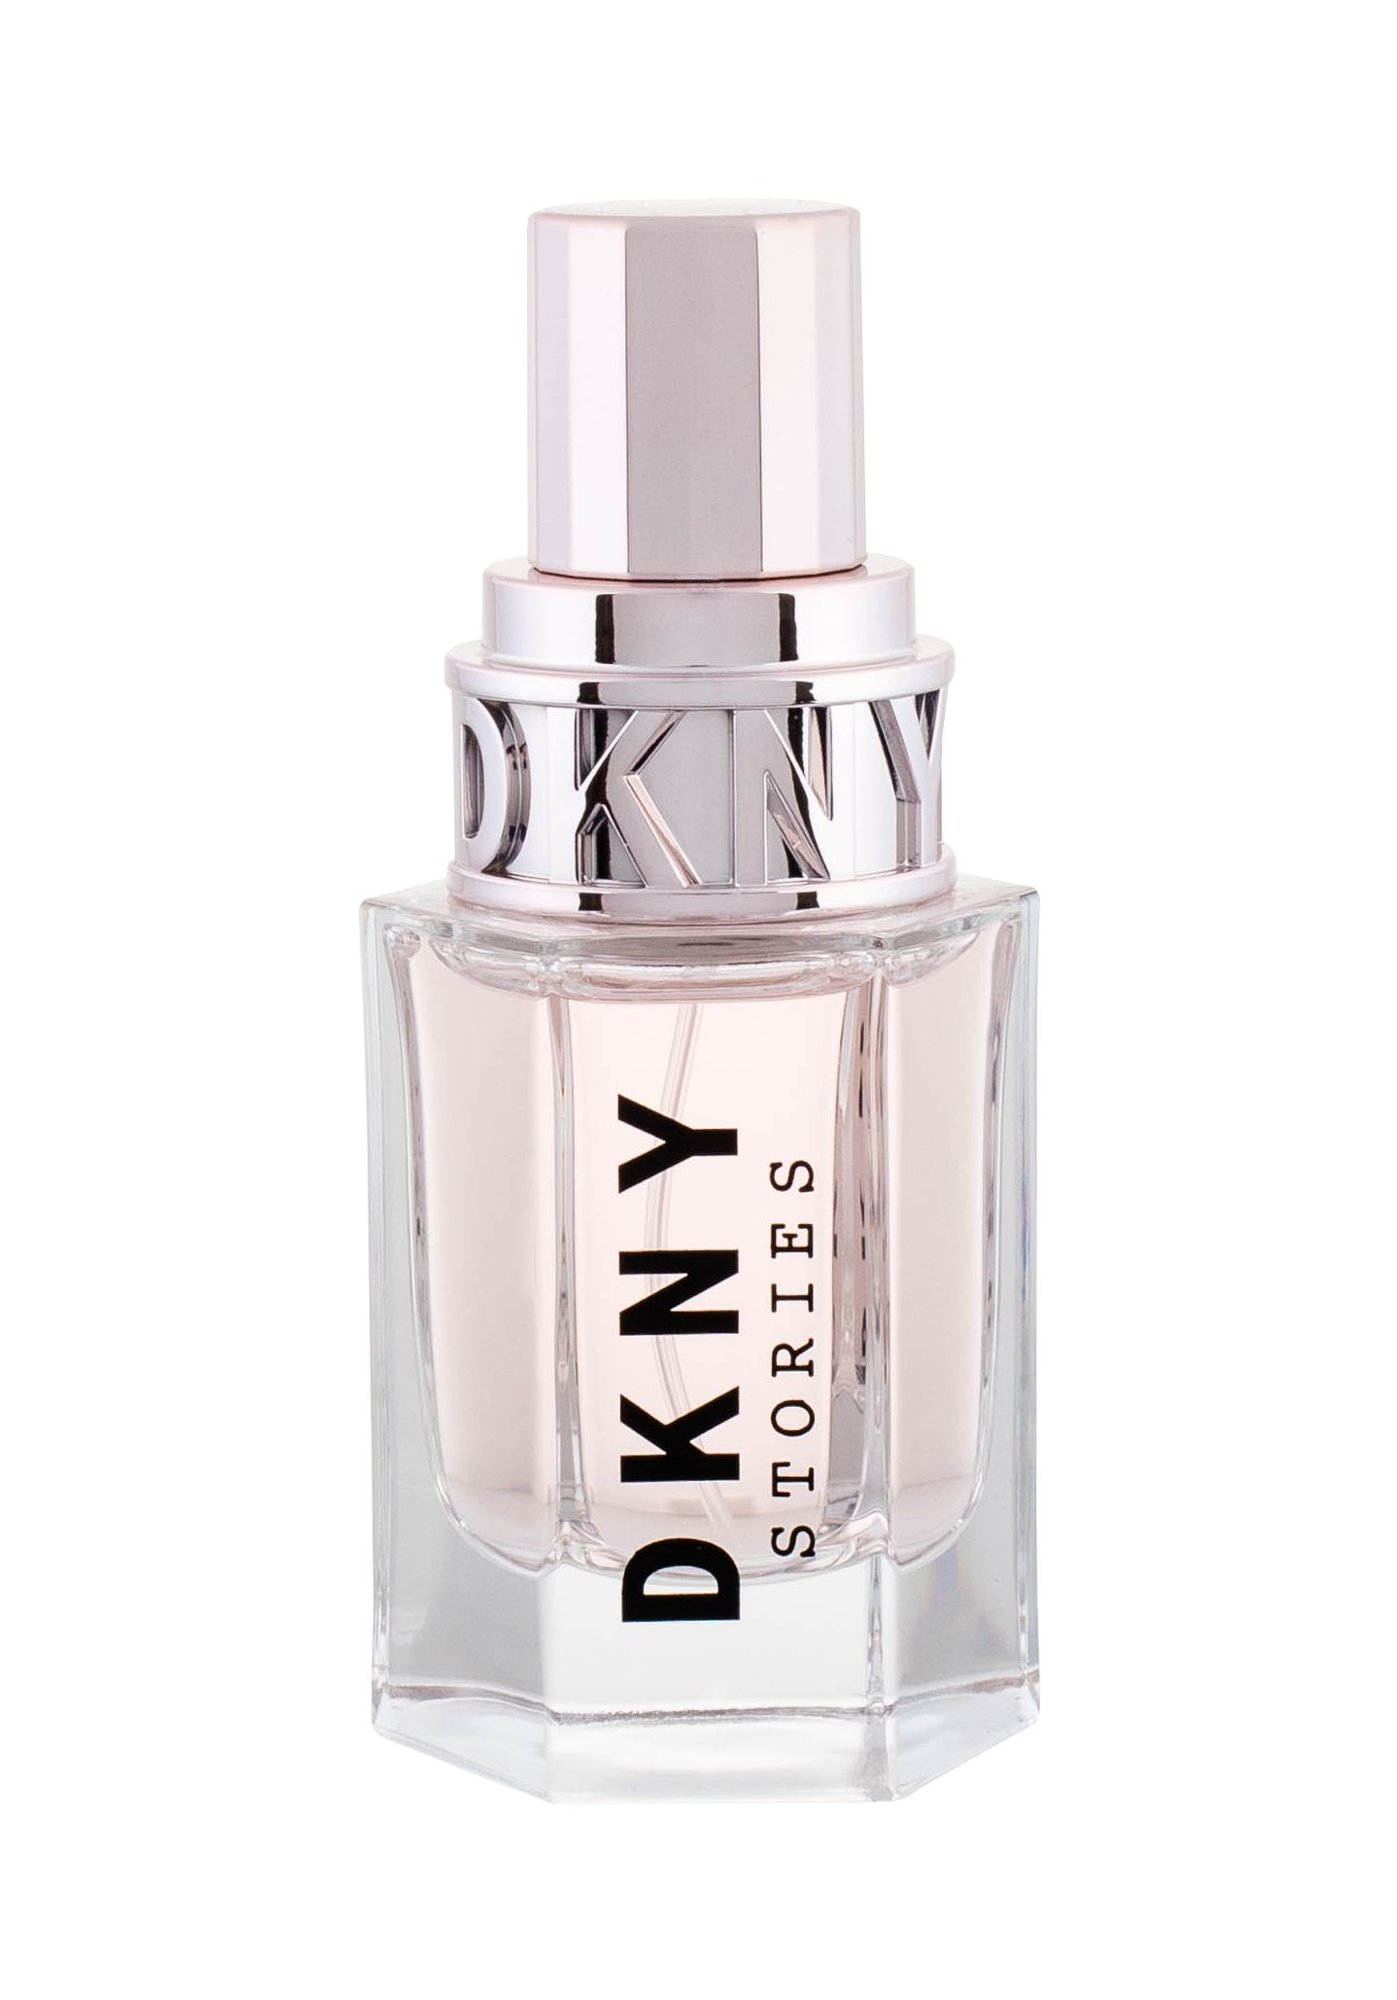 DKNY DKNY Stories Eau de Parfum 30ml